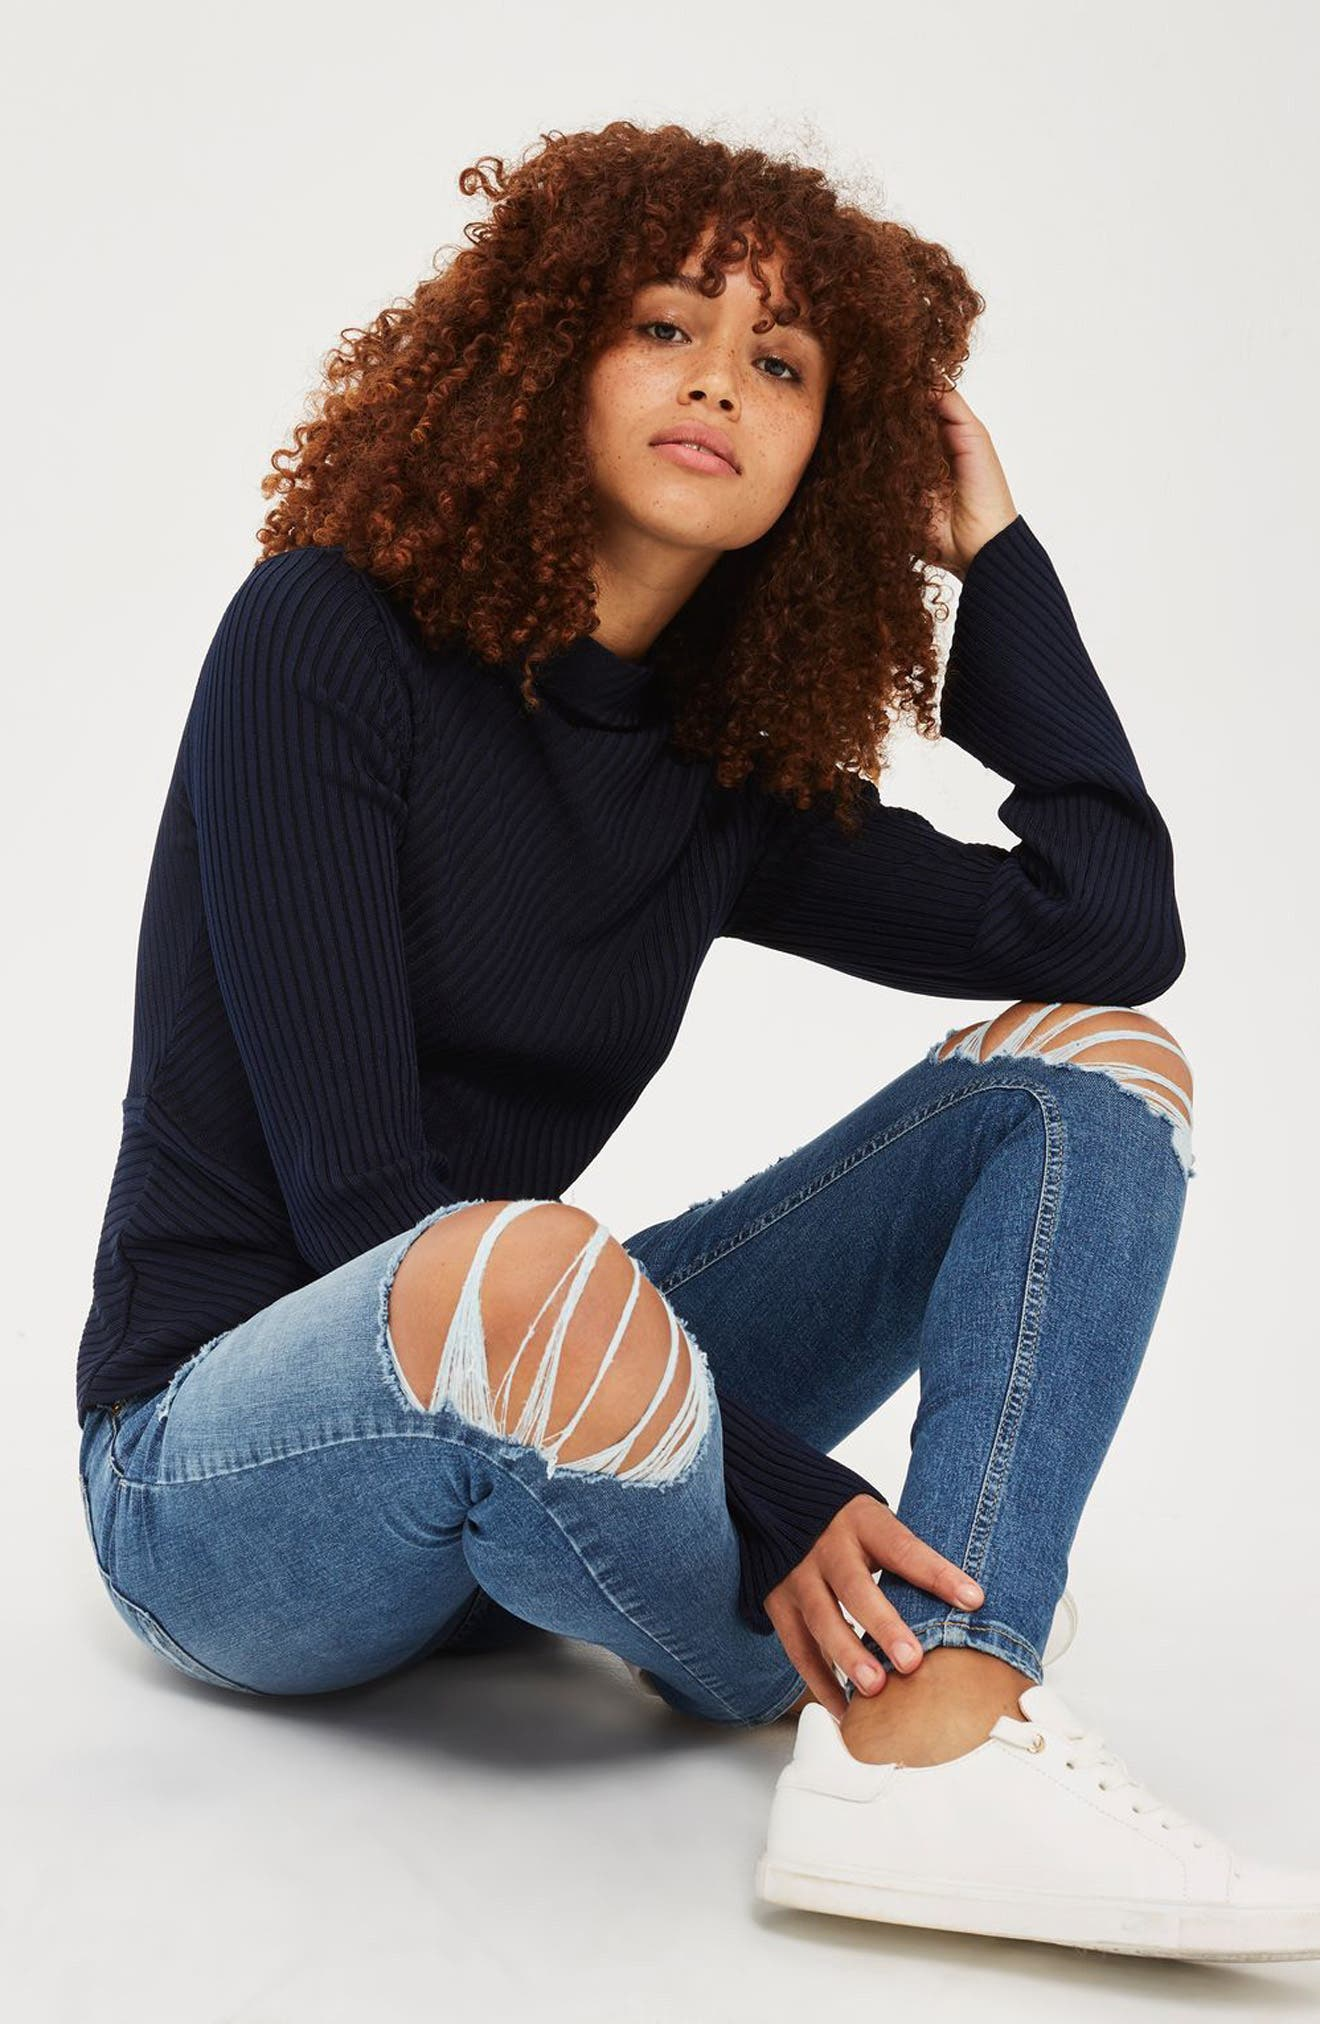 Topshop Sweater & Jeans Outfit with Accessories